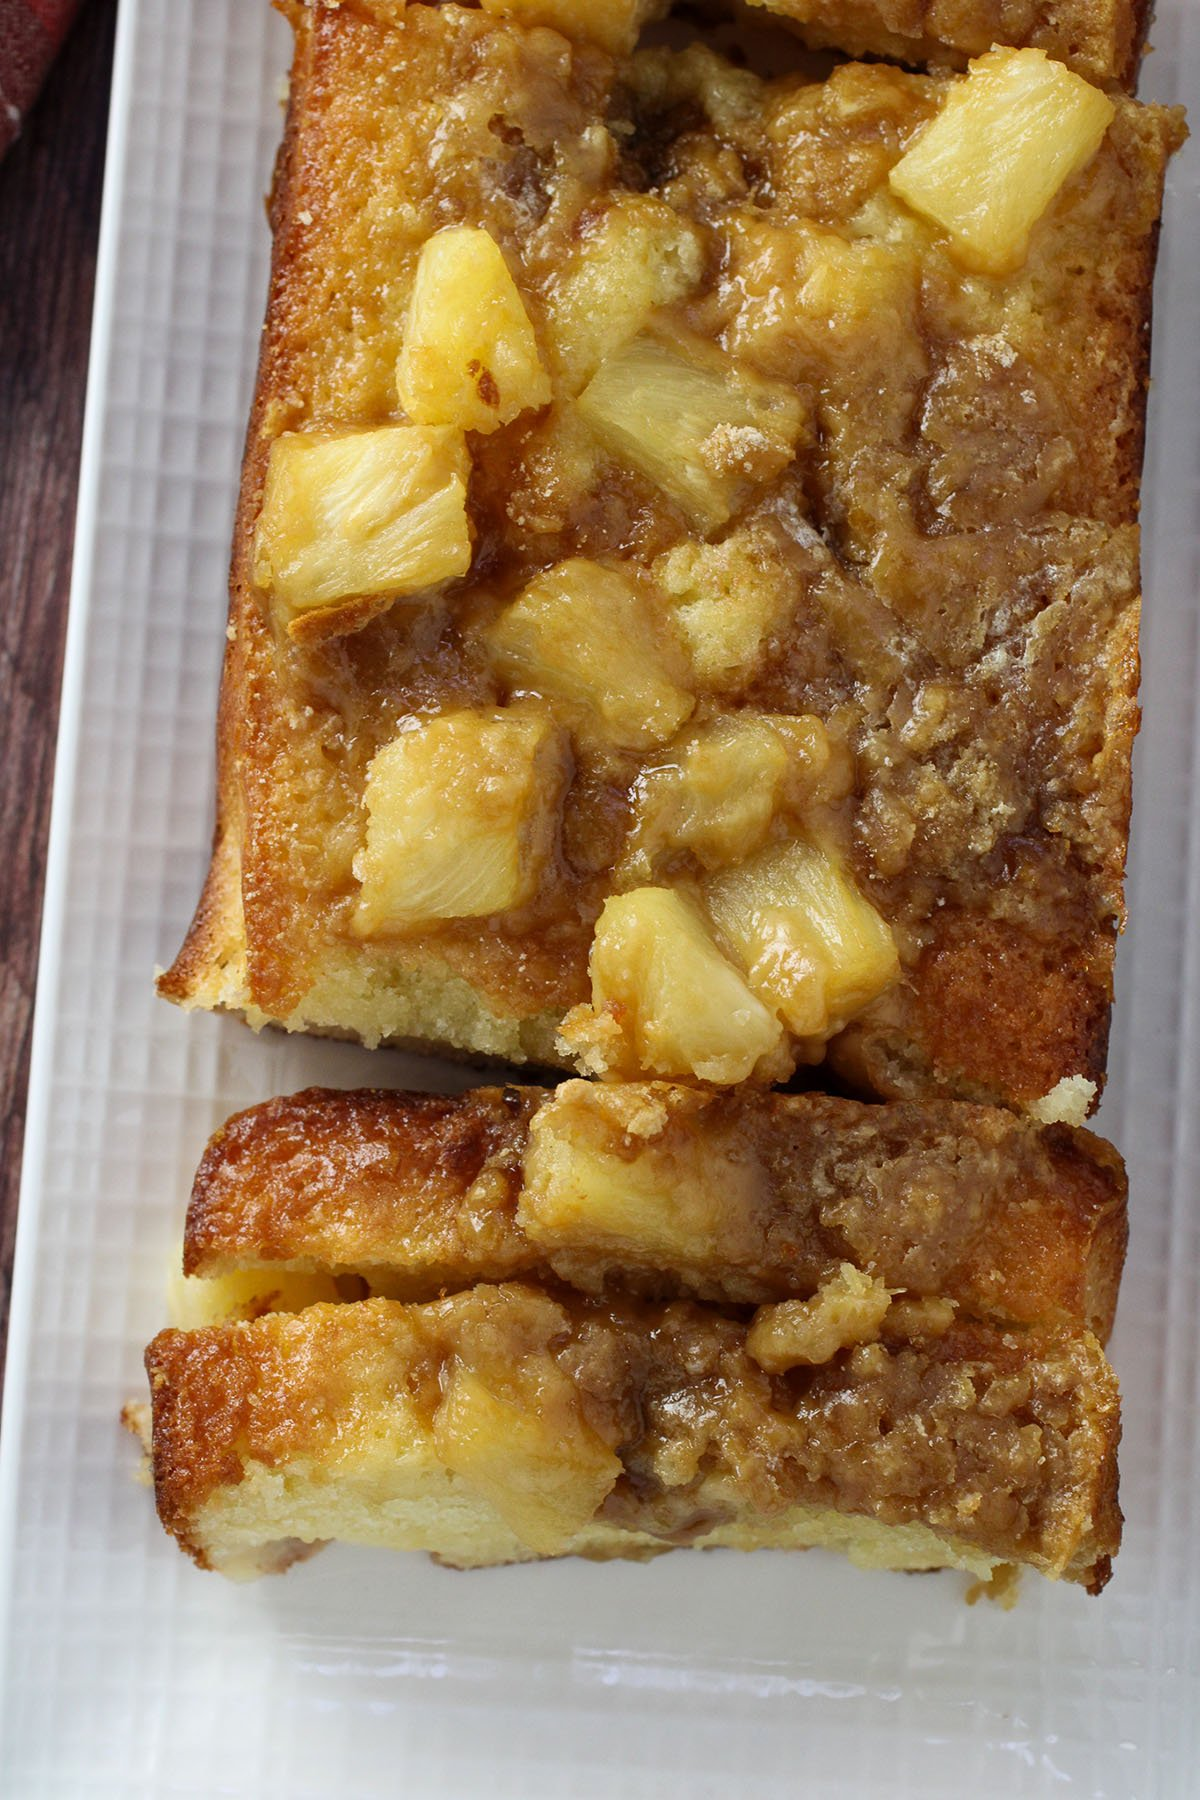 Top view of sliced pineapple loaf cake.